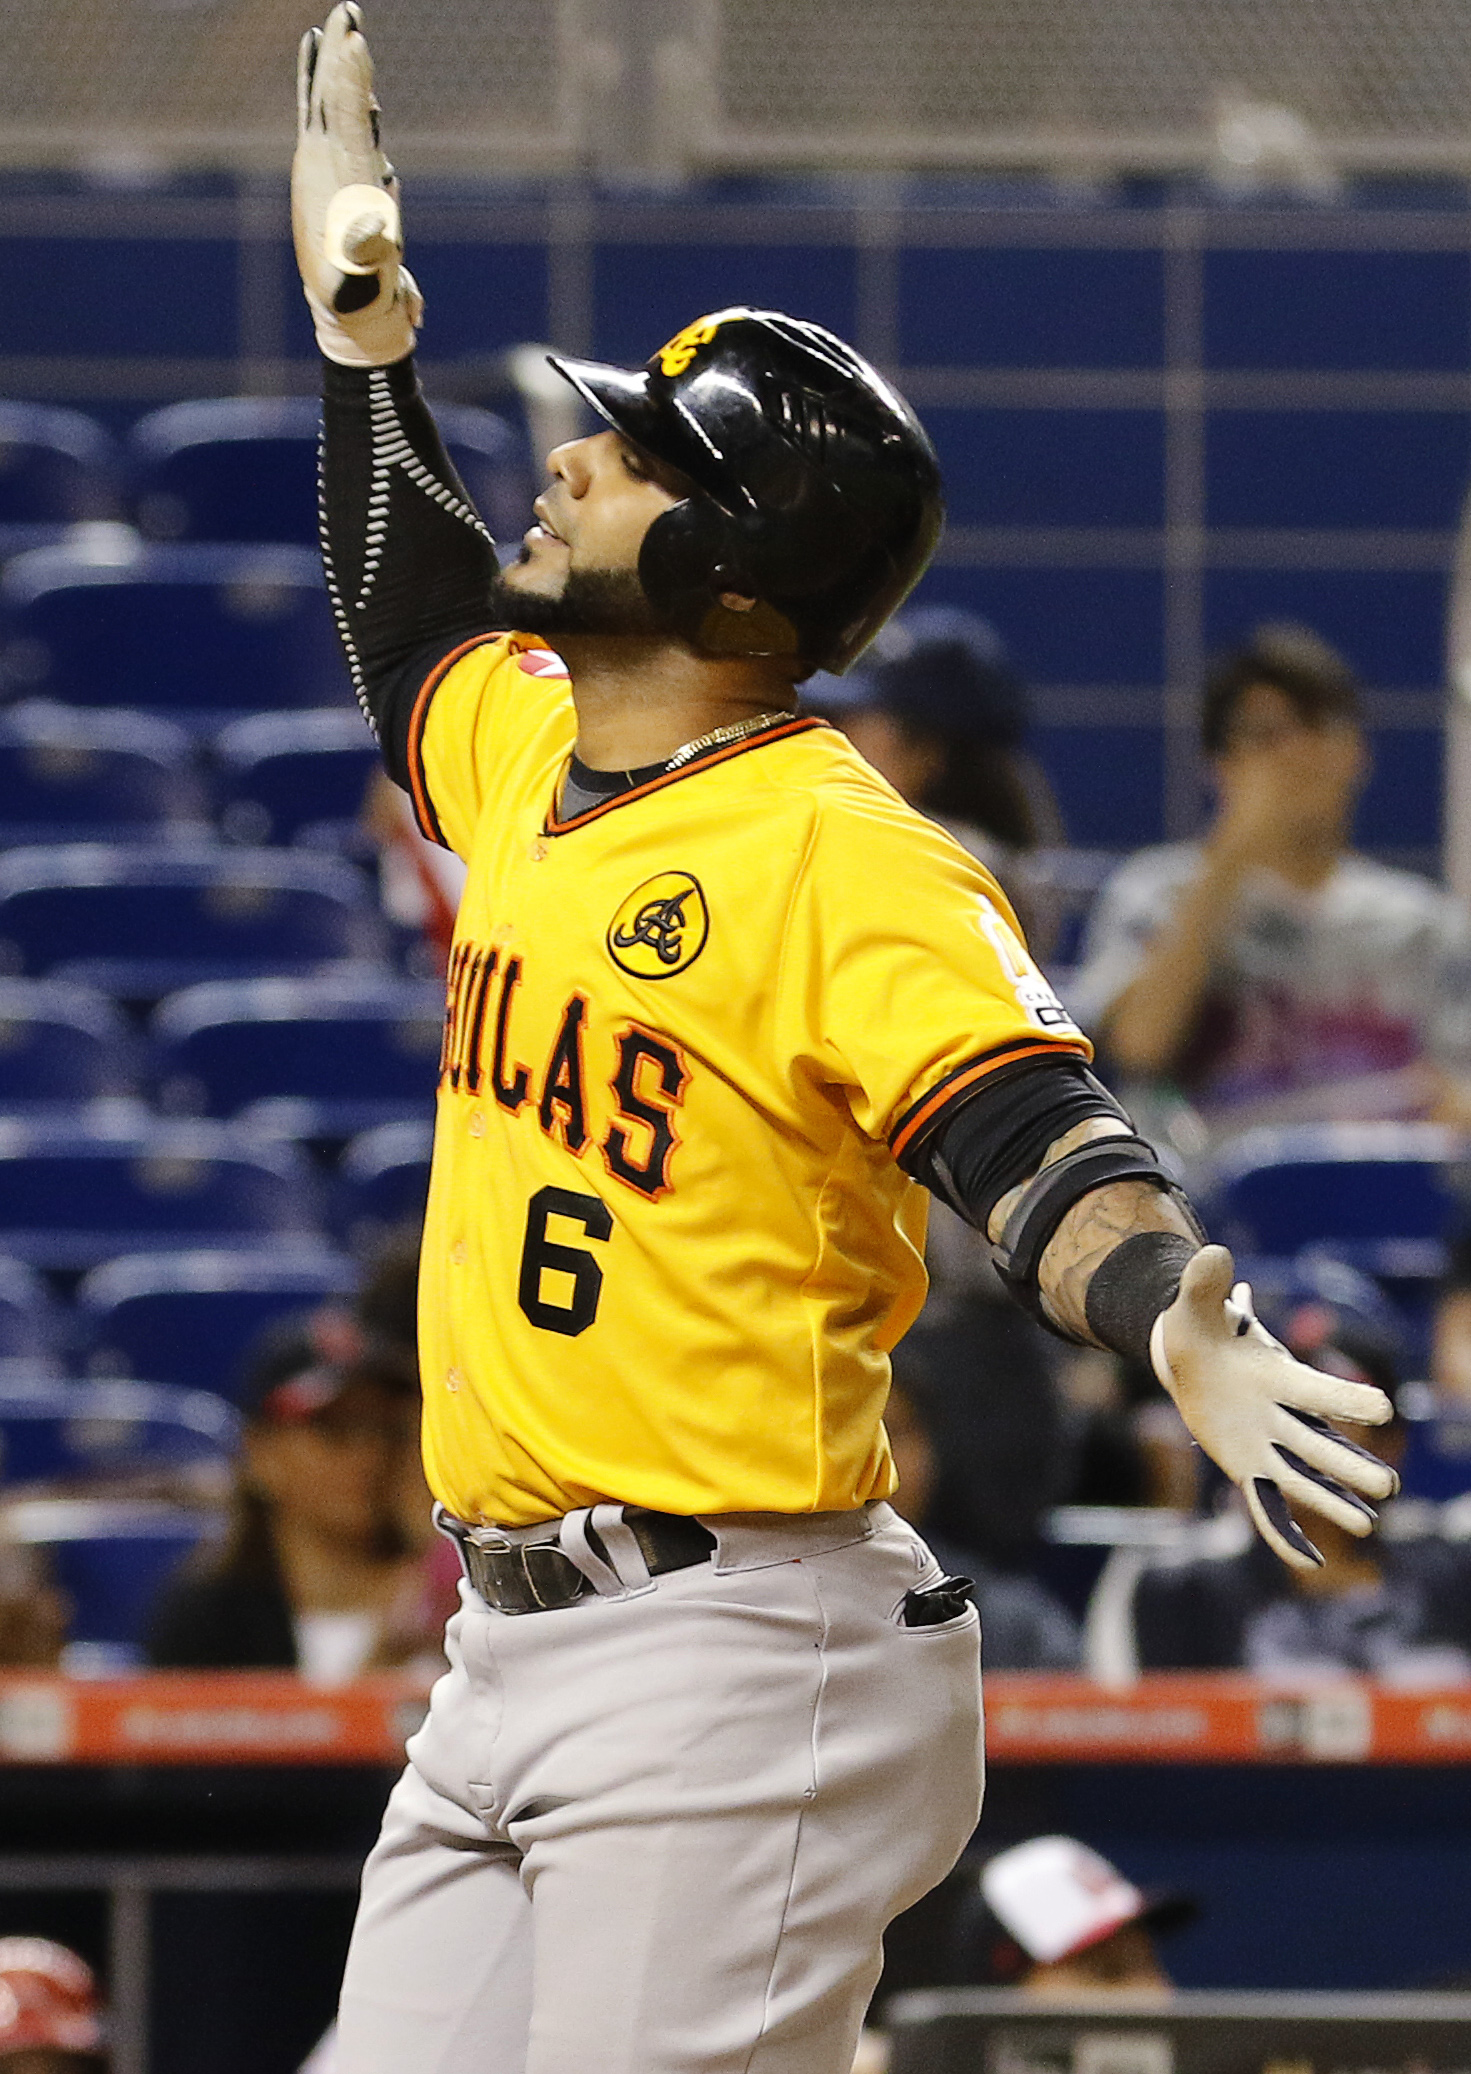 Aguilas' Jonathan Villar reacts as he crosses home plate after his first-inning home run against the Cardenales during the championship Serie de las Americas baseball game at Marlins Park in Miami, Sunday, Nov. 22, 2015. (AP Photo/Joe Skipper)